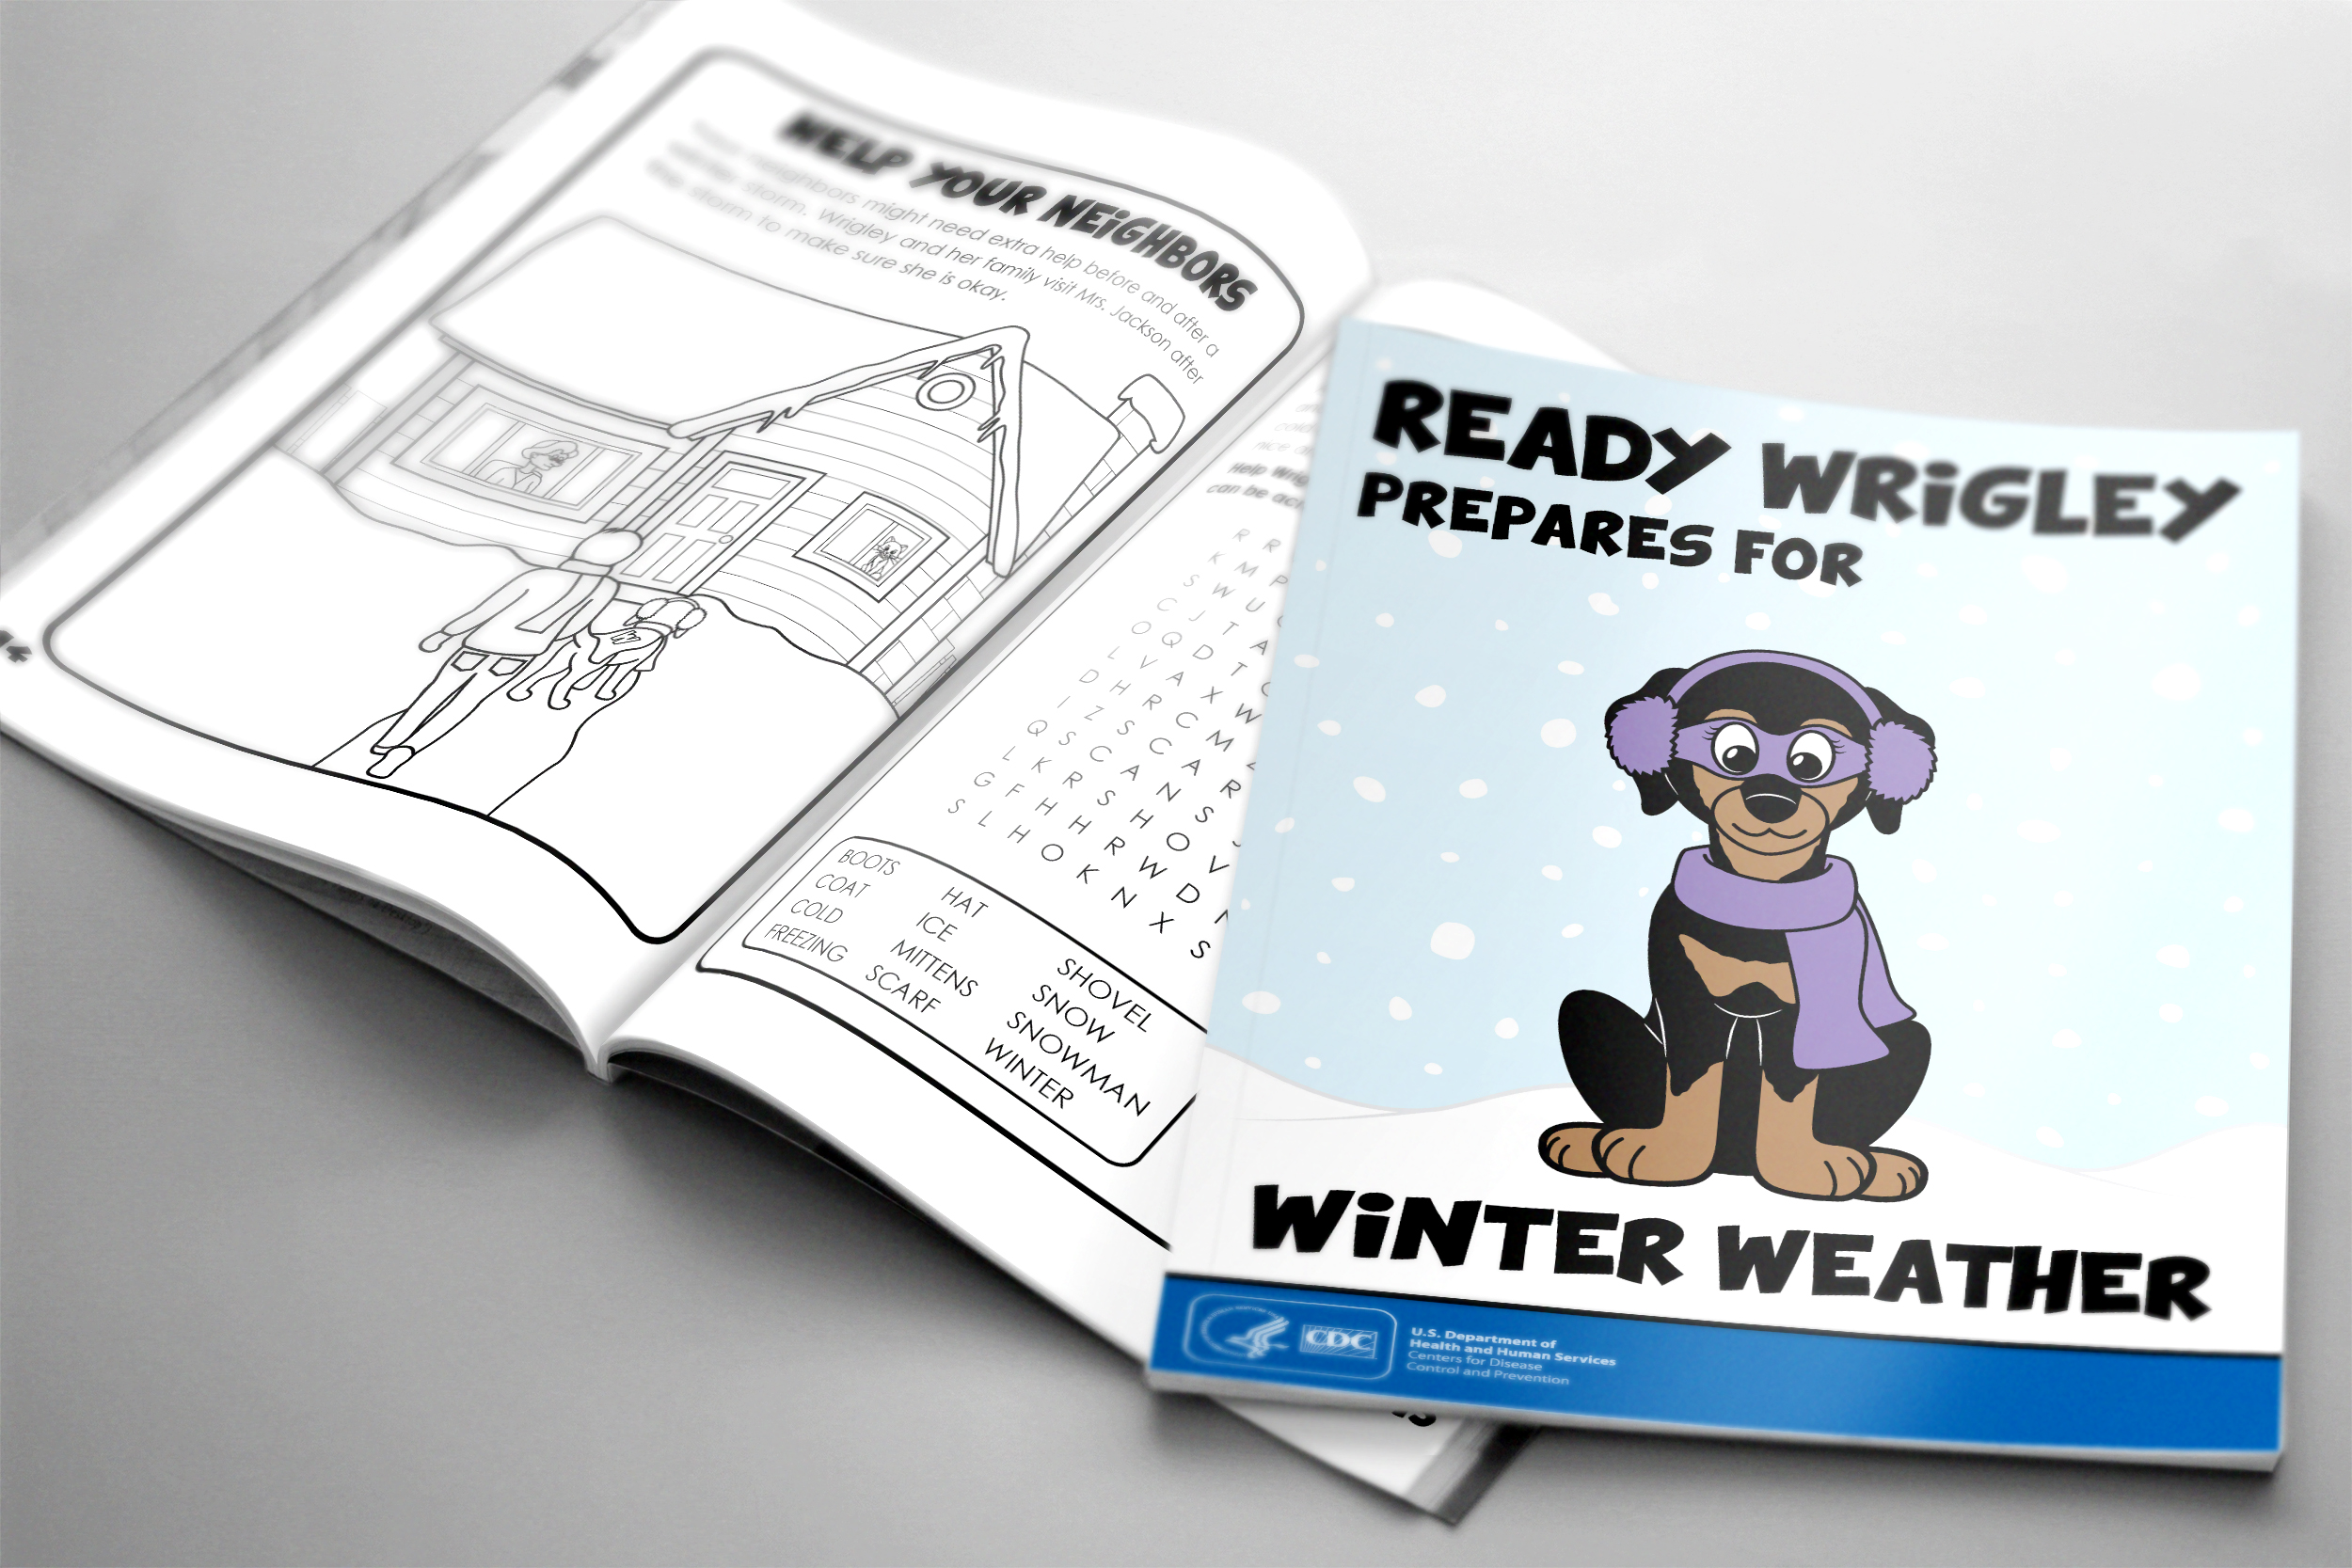 Ready Wrigley Prepares for Winter Weather